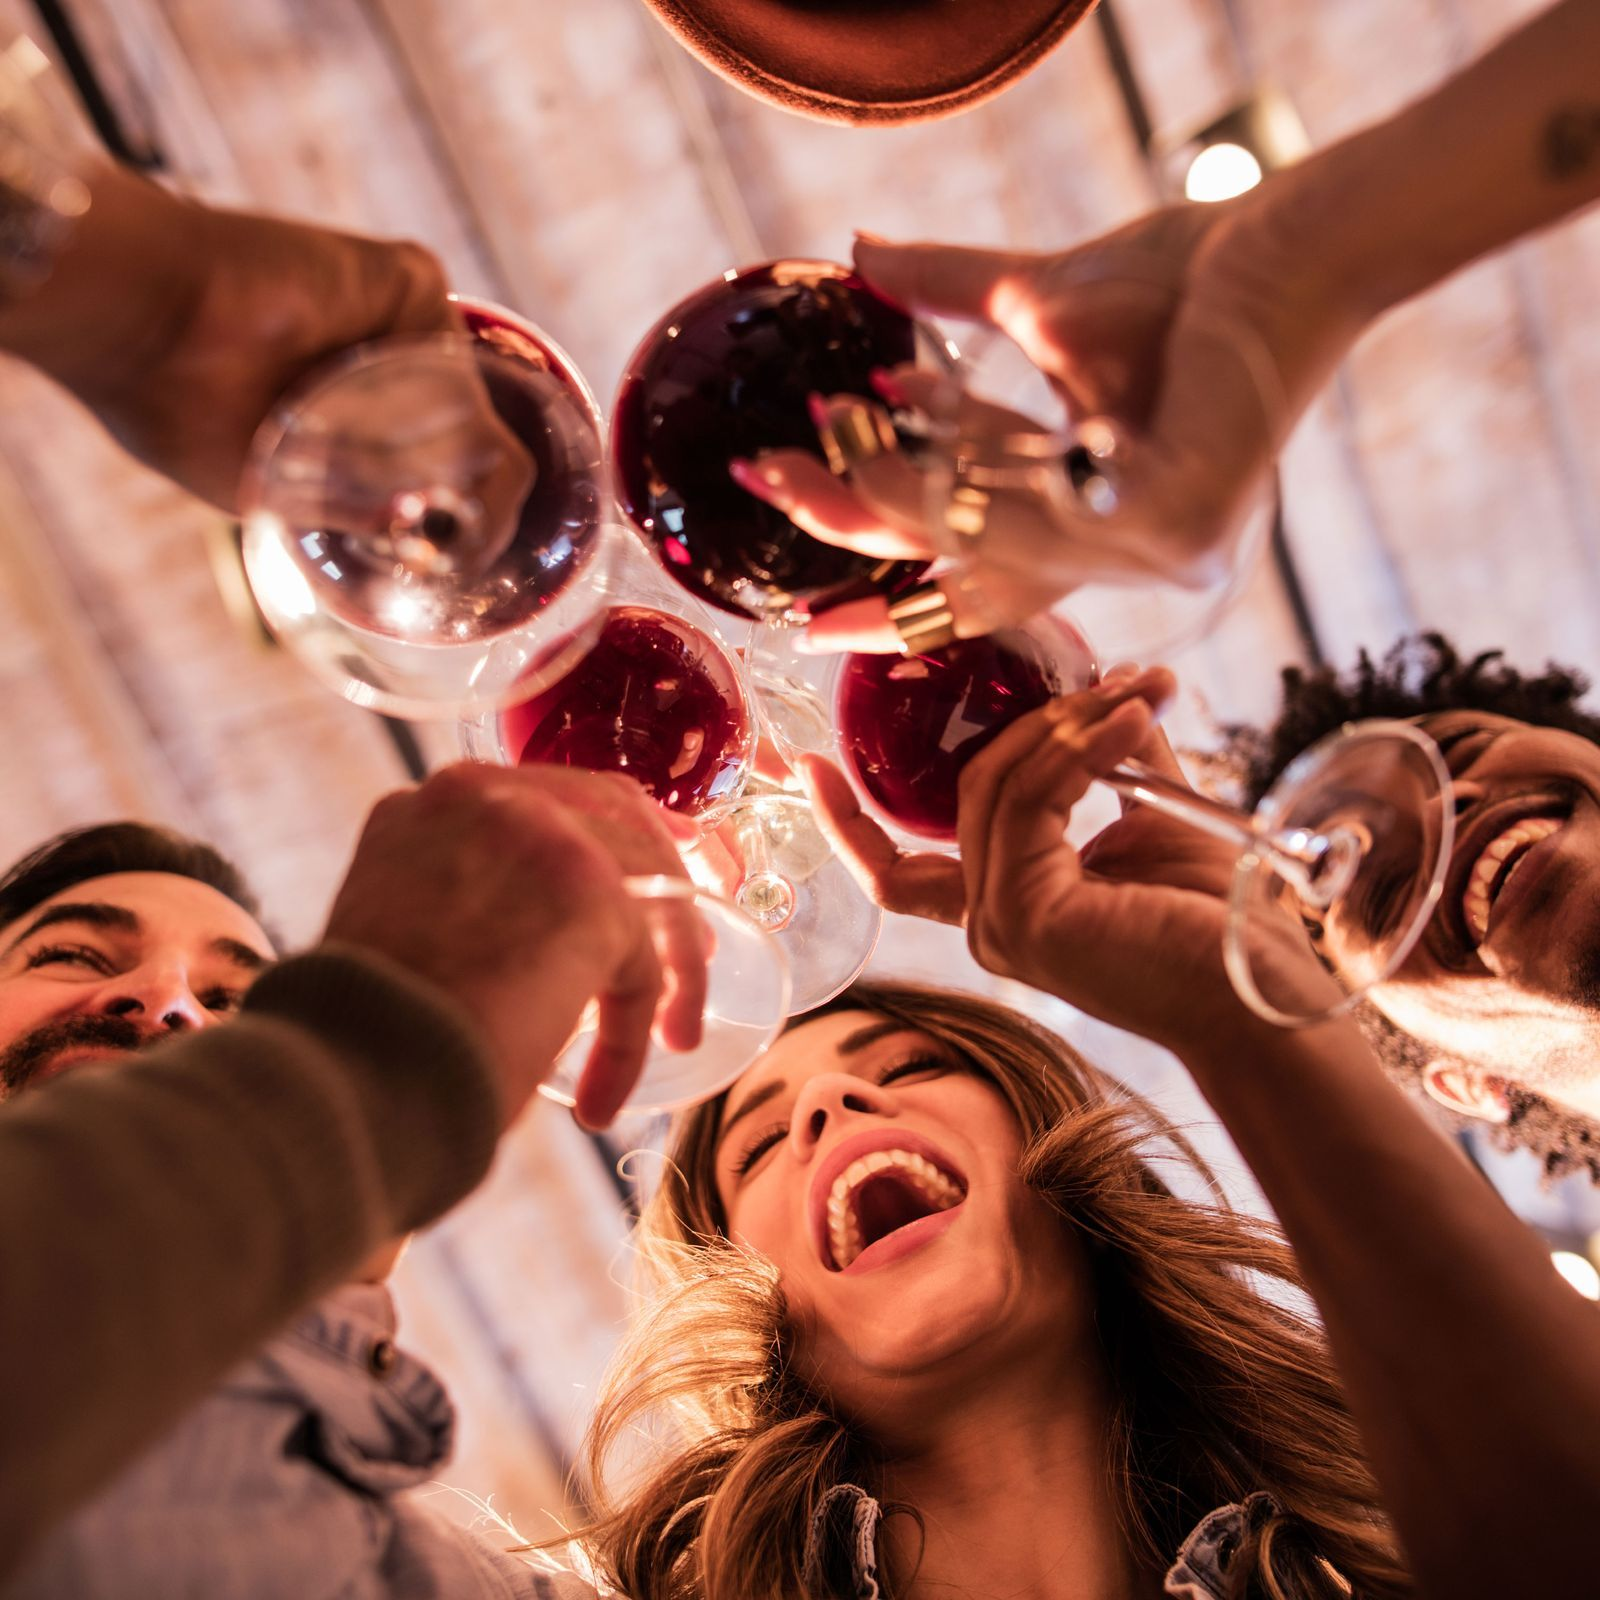 36 Party Ideas That Will Make Your Next Get Together Instagram Famous In 2020 Best Part Of Me Welcome Summer Wine Night